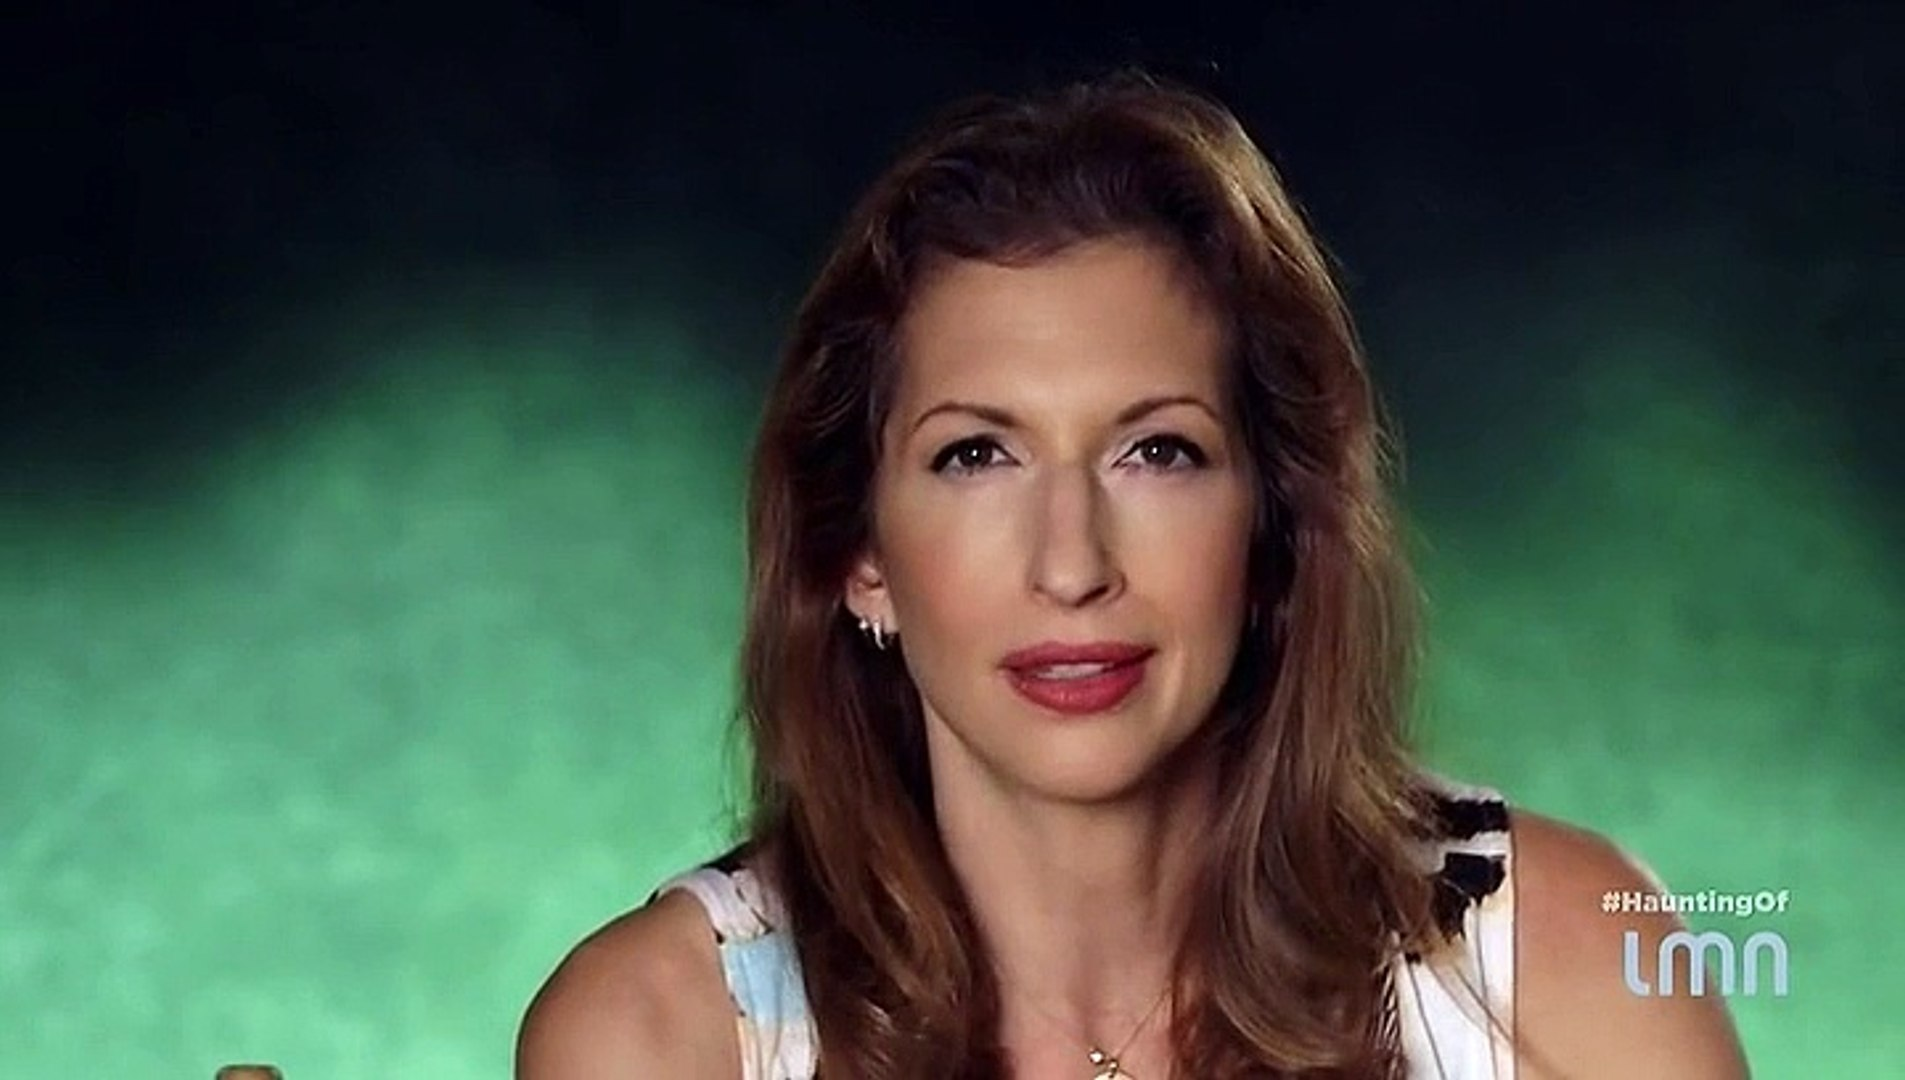 The Haunting Of S04E37 Alysia Reiner,Tv season channel movies 2018 & 2019